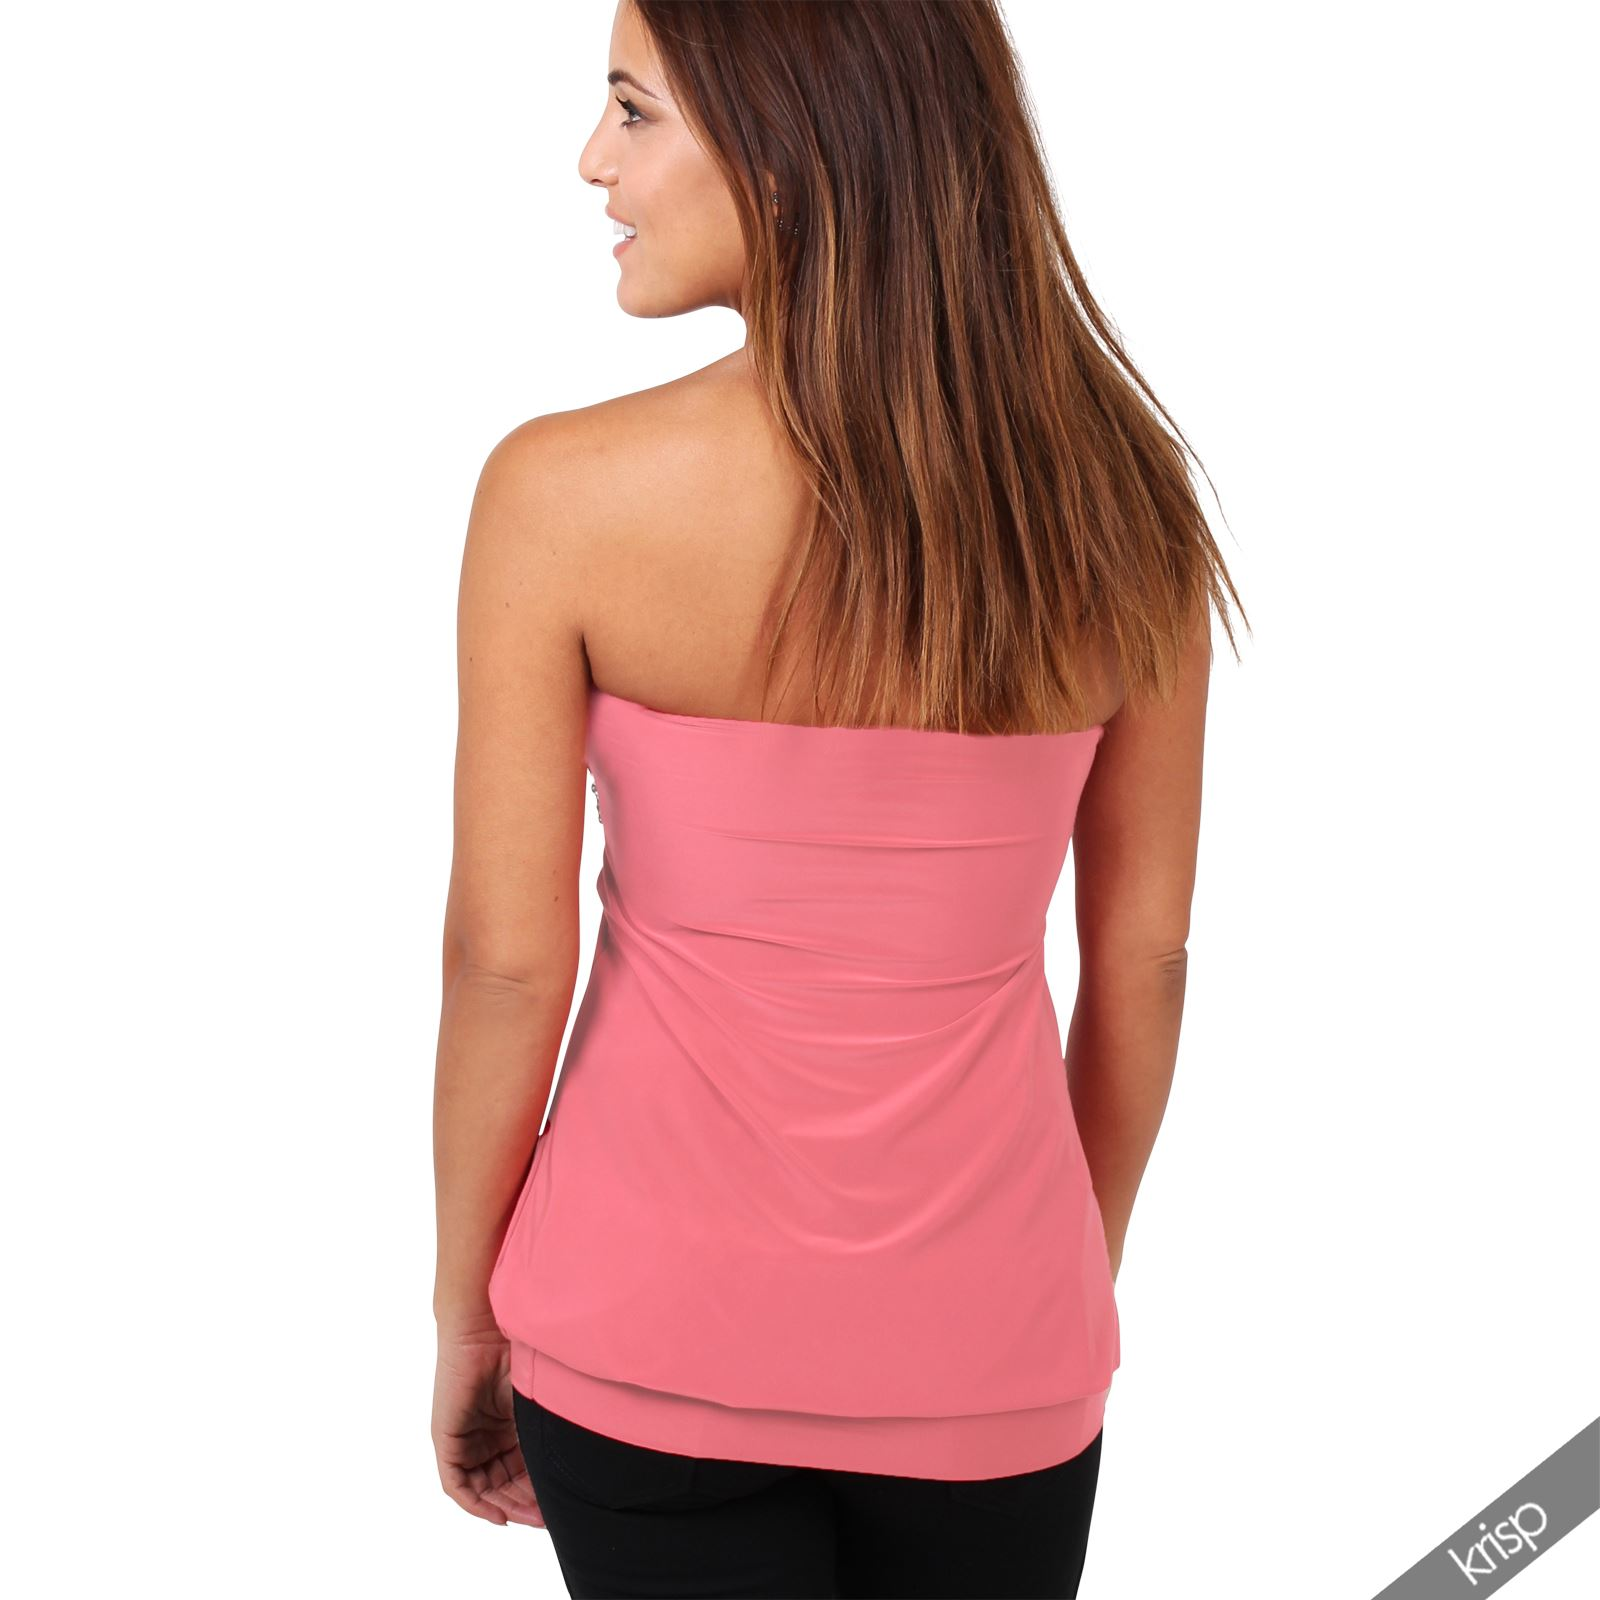 Shop from the world's largest selection and best deals for Women's Strapless Tops and Blouses. Free delivery and free returns on eBay Plus items.